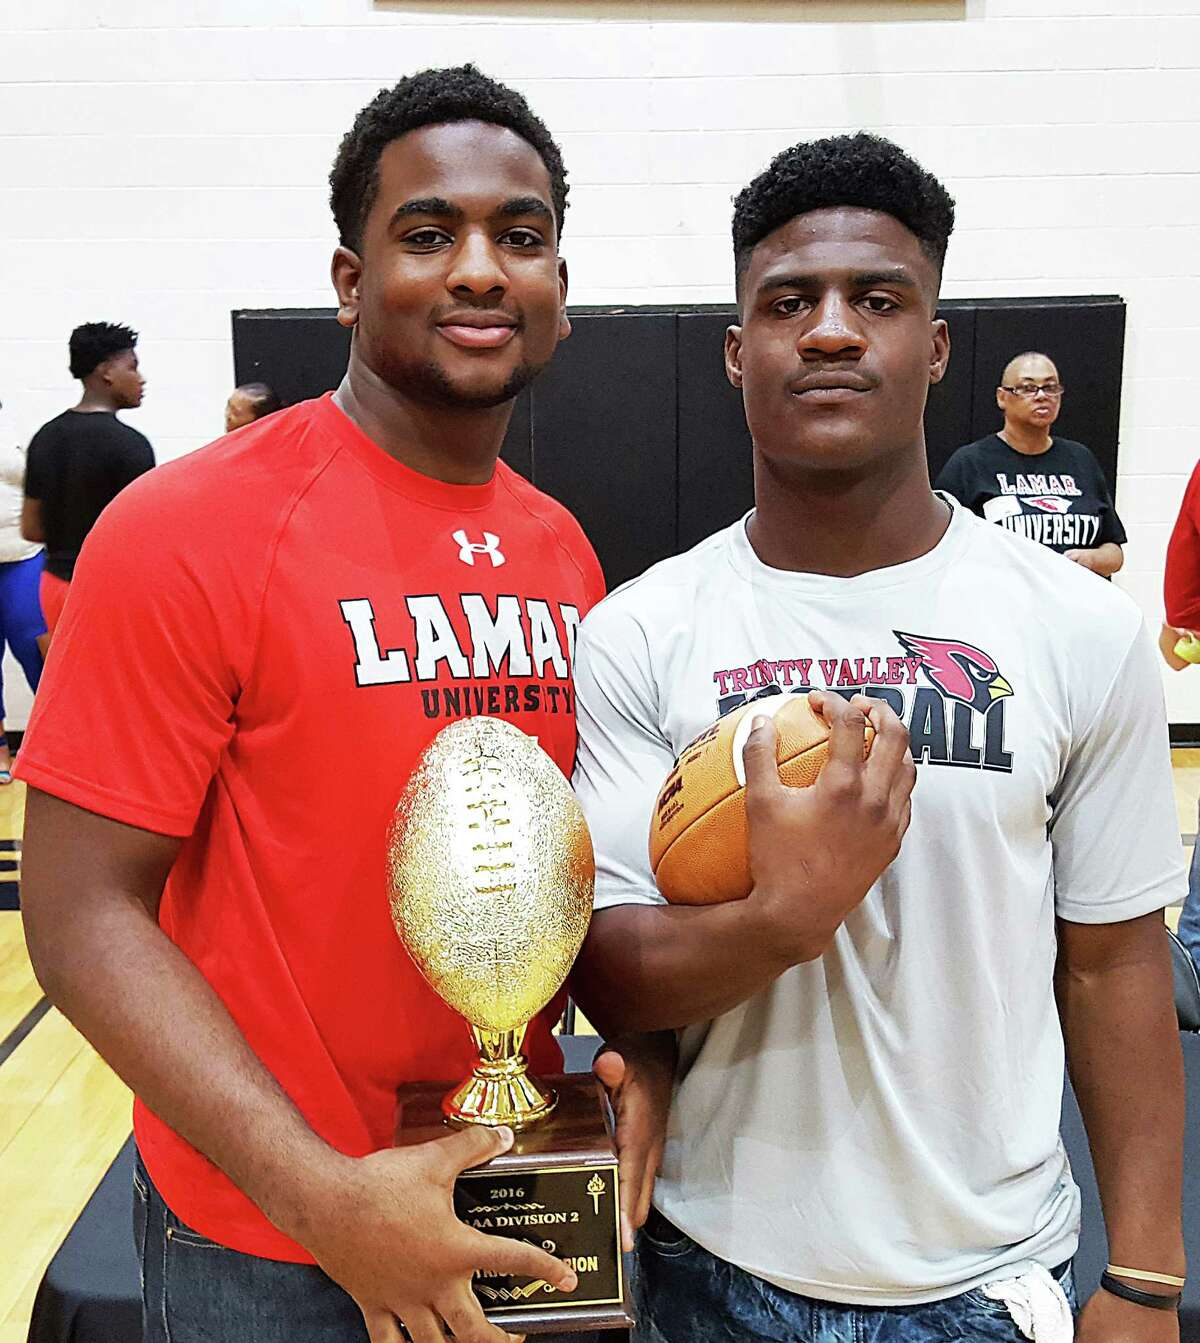 Tyris Williams, left, and Alex Brown from Liberty High School both signed National Letters of Intent to play at the next level. Tyris will be playing for the Lamar University Cardinals and Alex will play at Trinity Valley Community College. Both were instrumental in the success of the Panthers moving to the third round of the football playoffs in 2016.